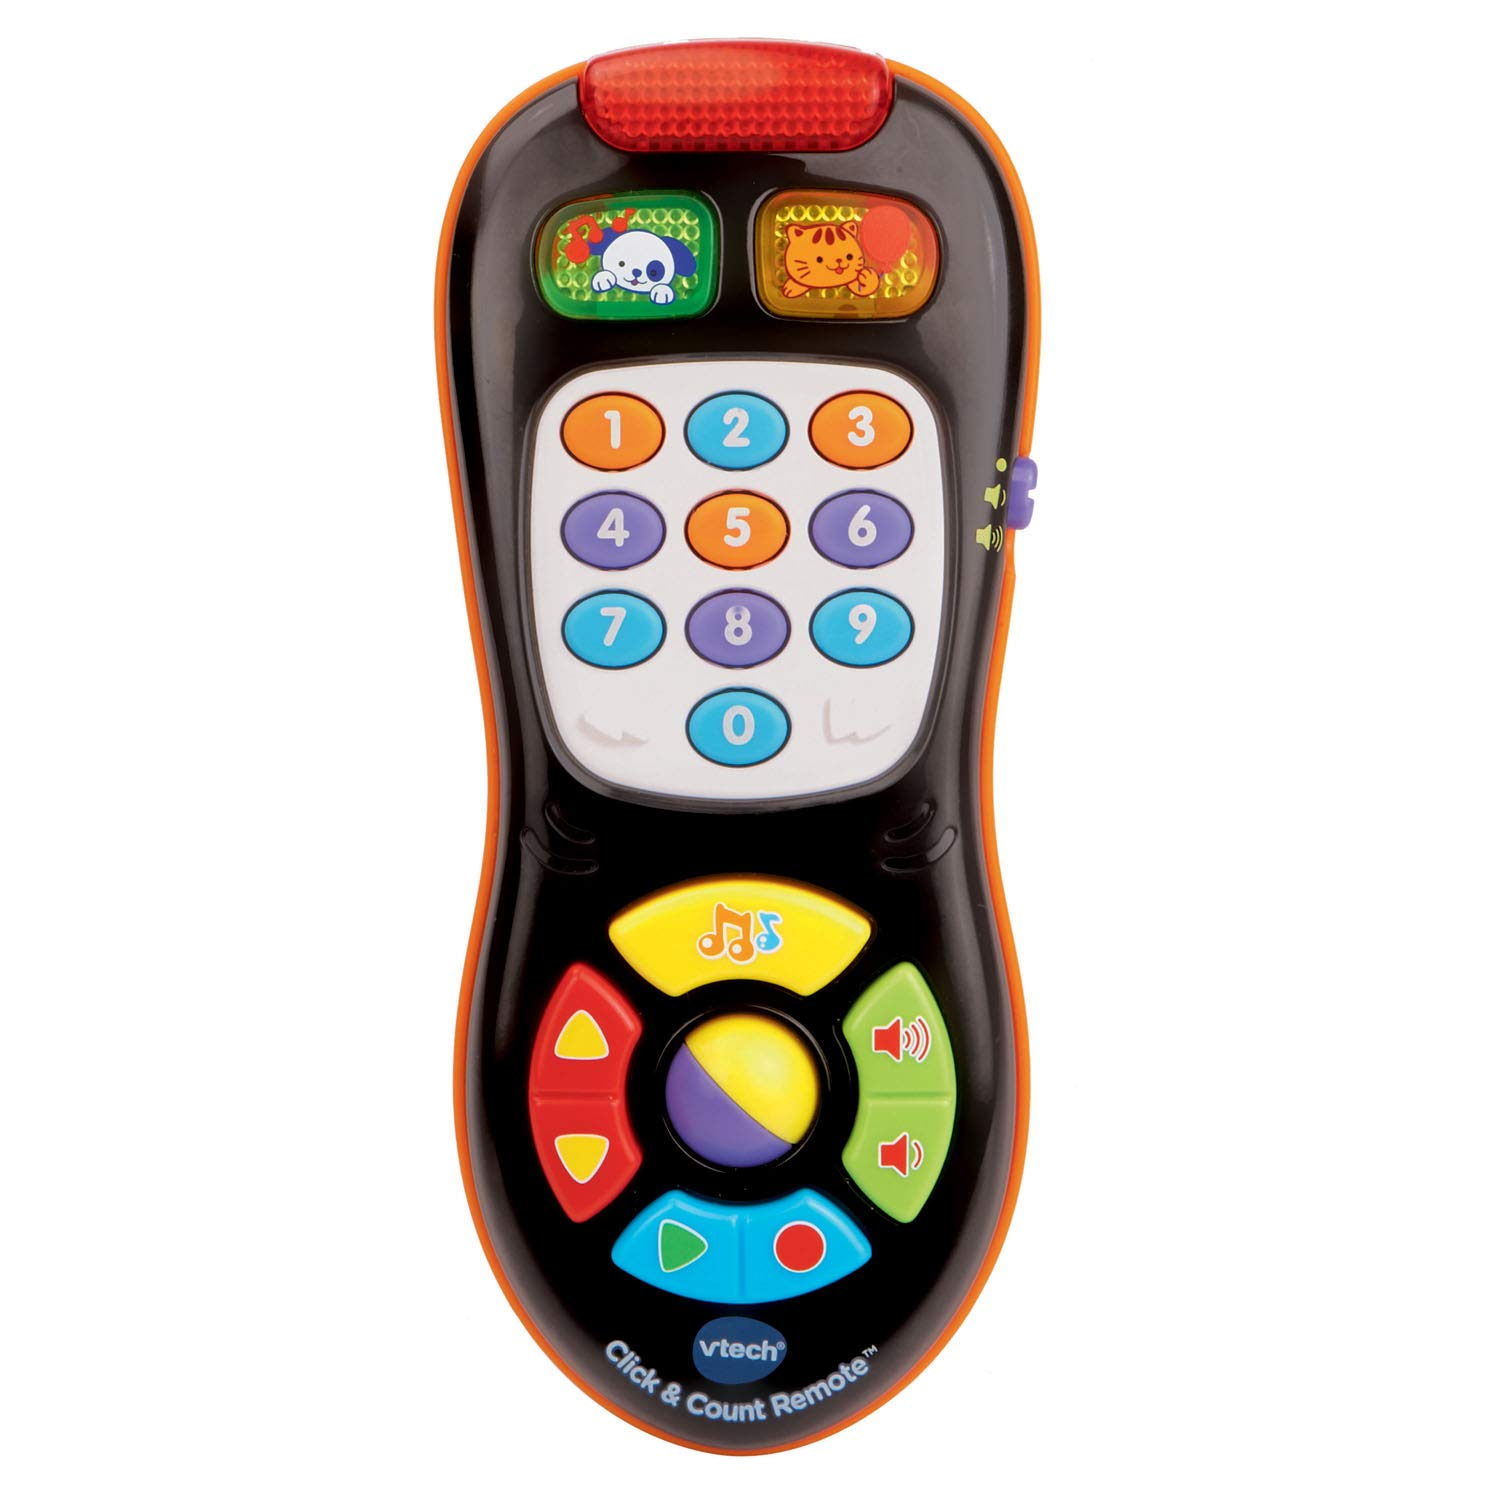 VTech Click and Count Remote, Black by VTech (Image #1)